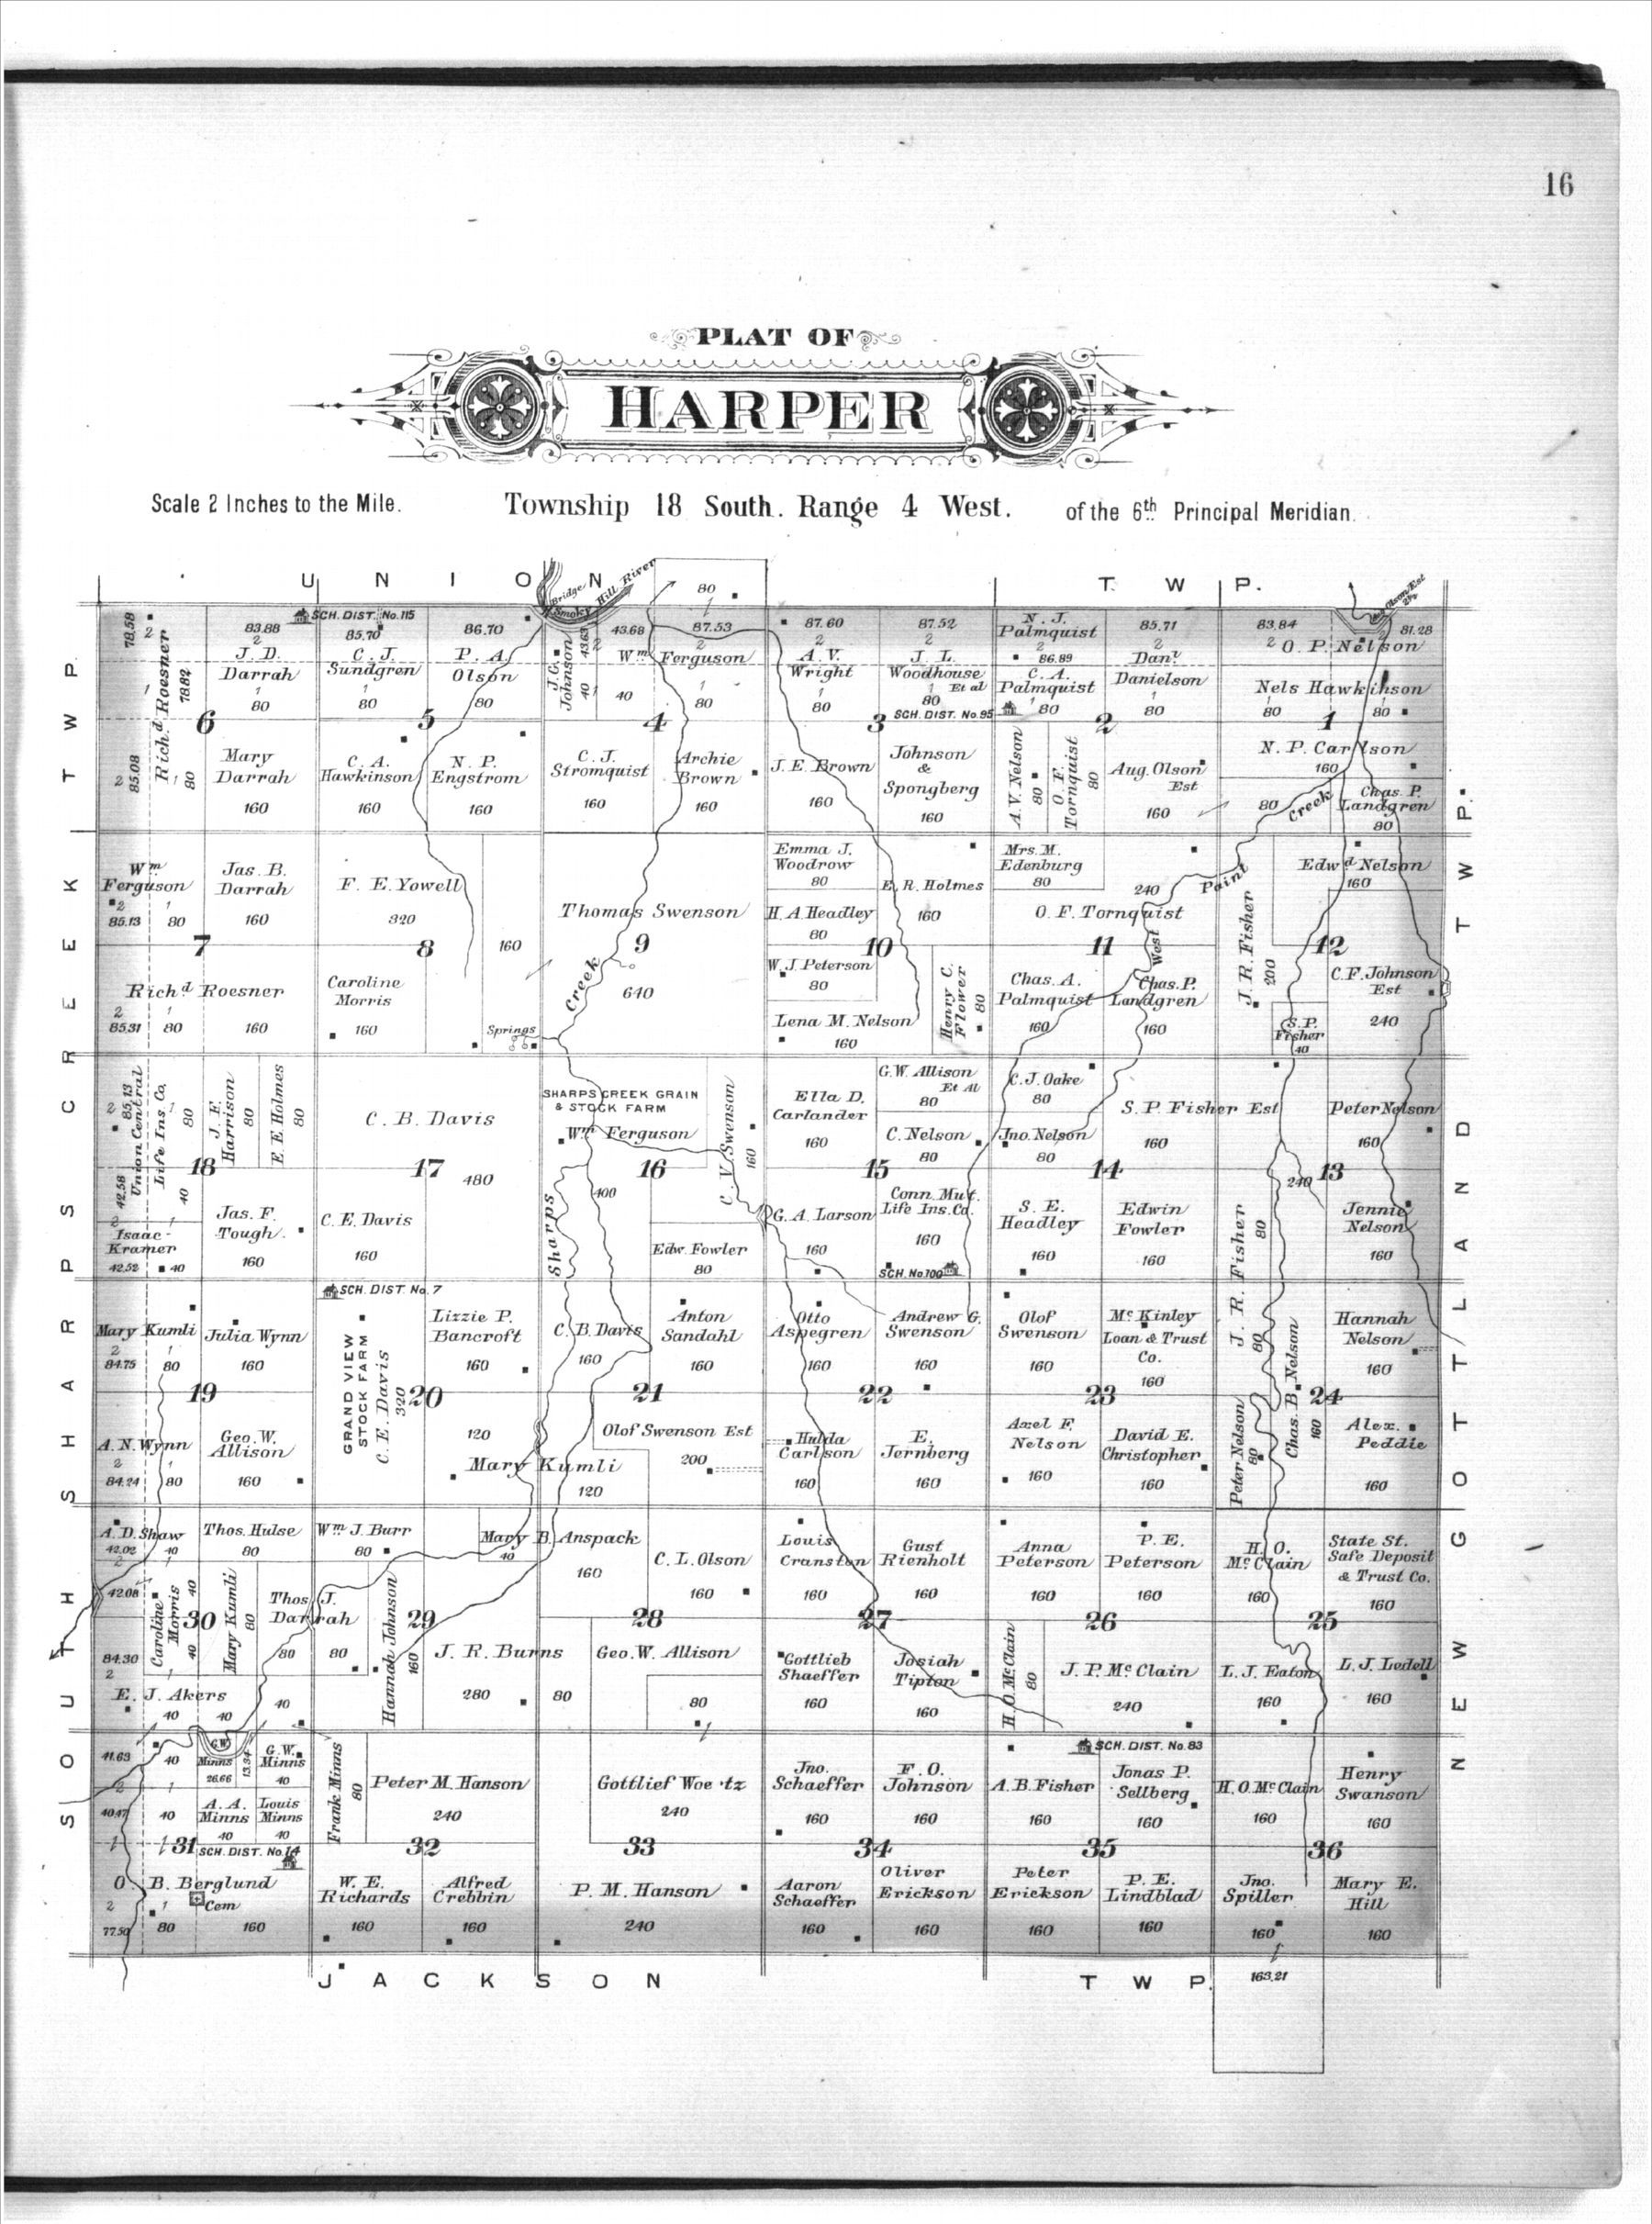 Plat book of McPherson County, Kansas - 16